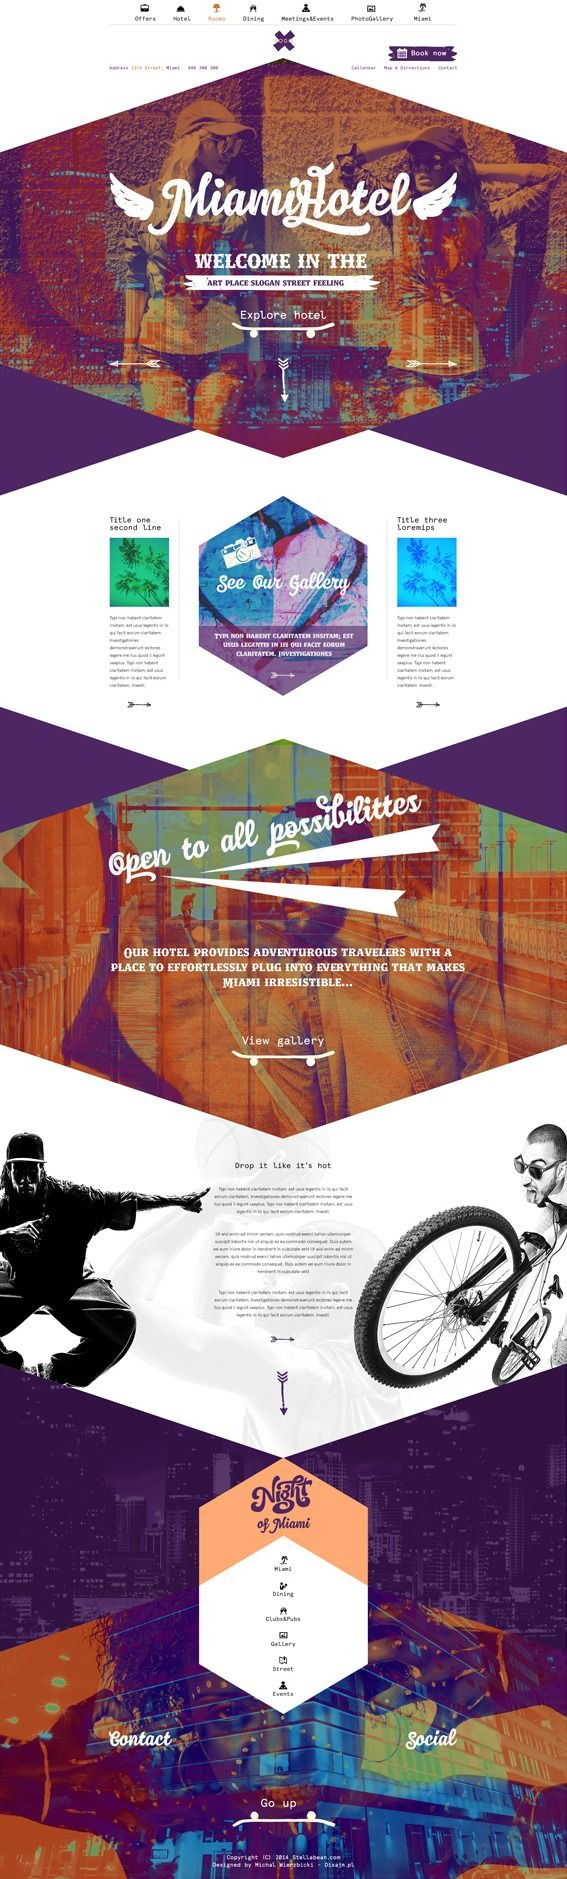 Unique Web Design, Miami Hotel #WebDesign #Design